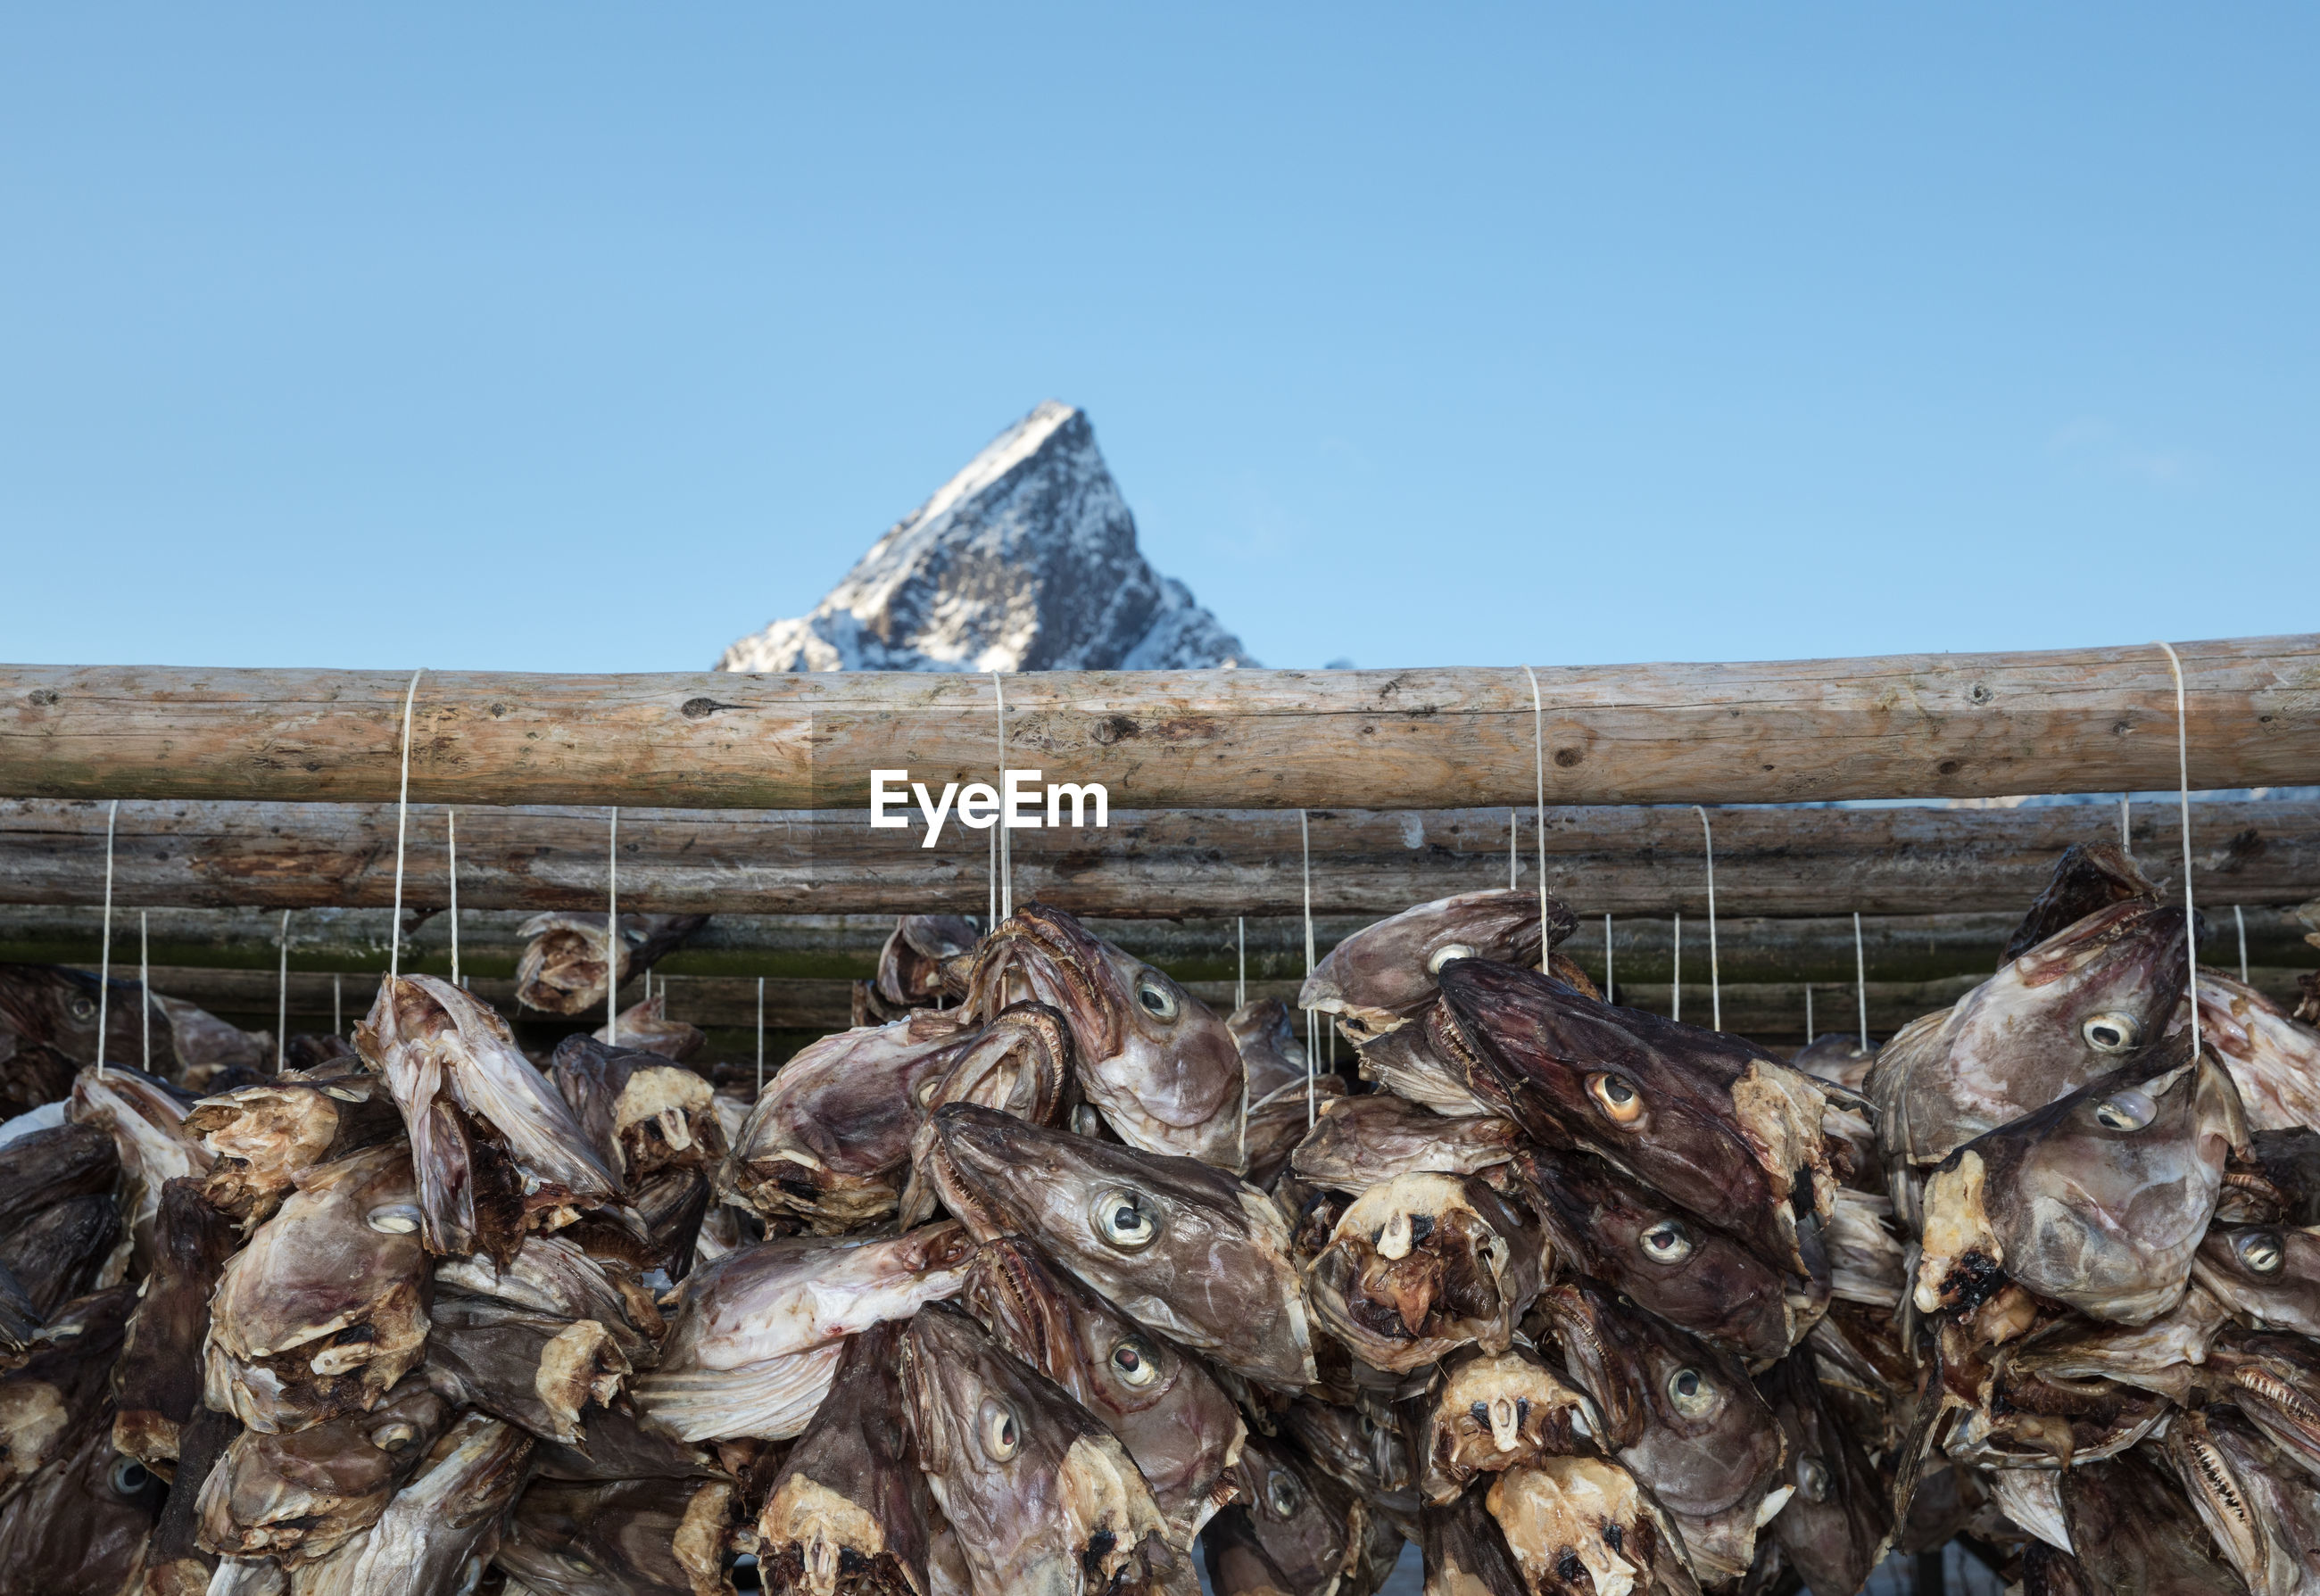 Dead fish drying on wood against clear sky